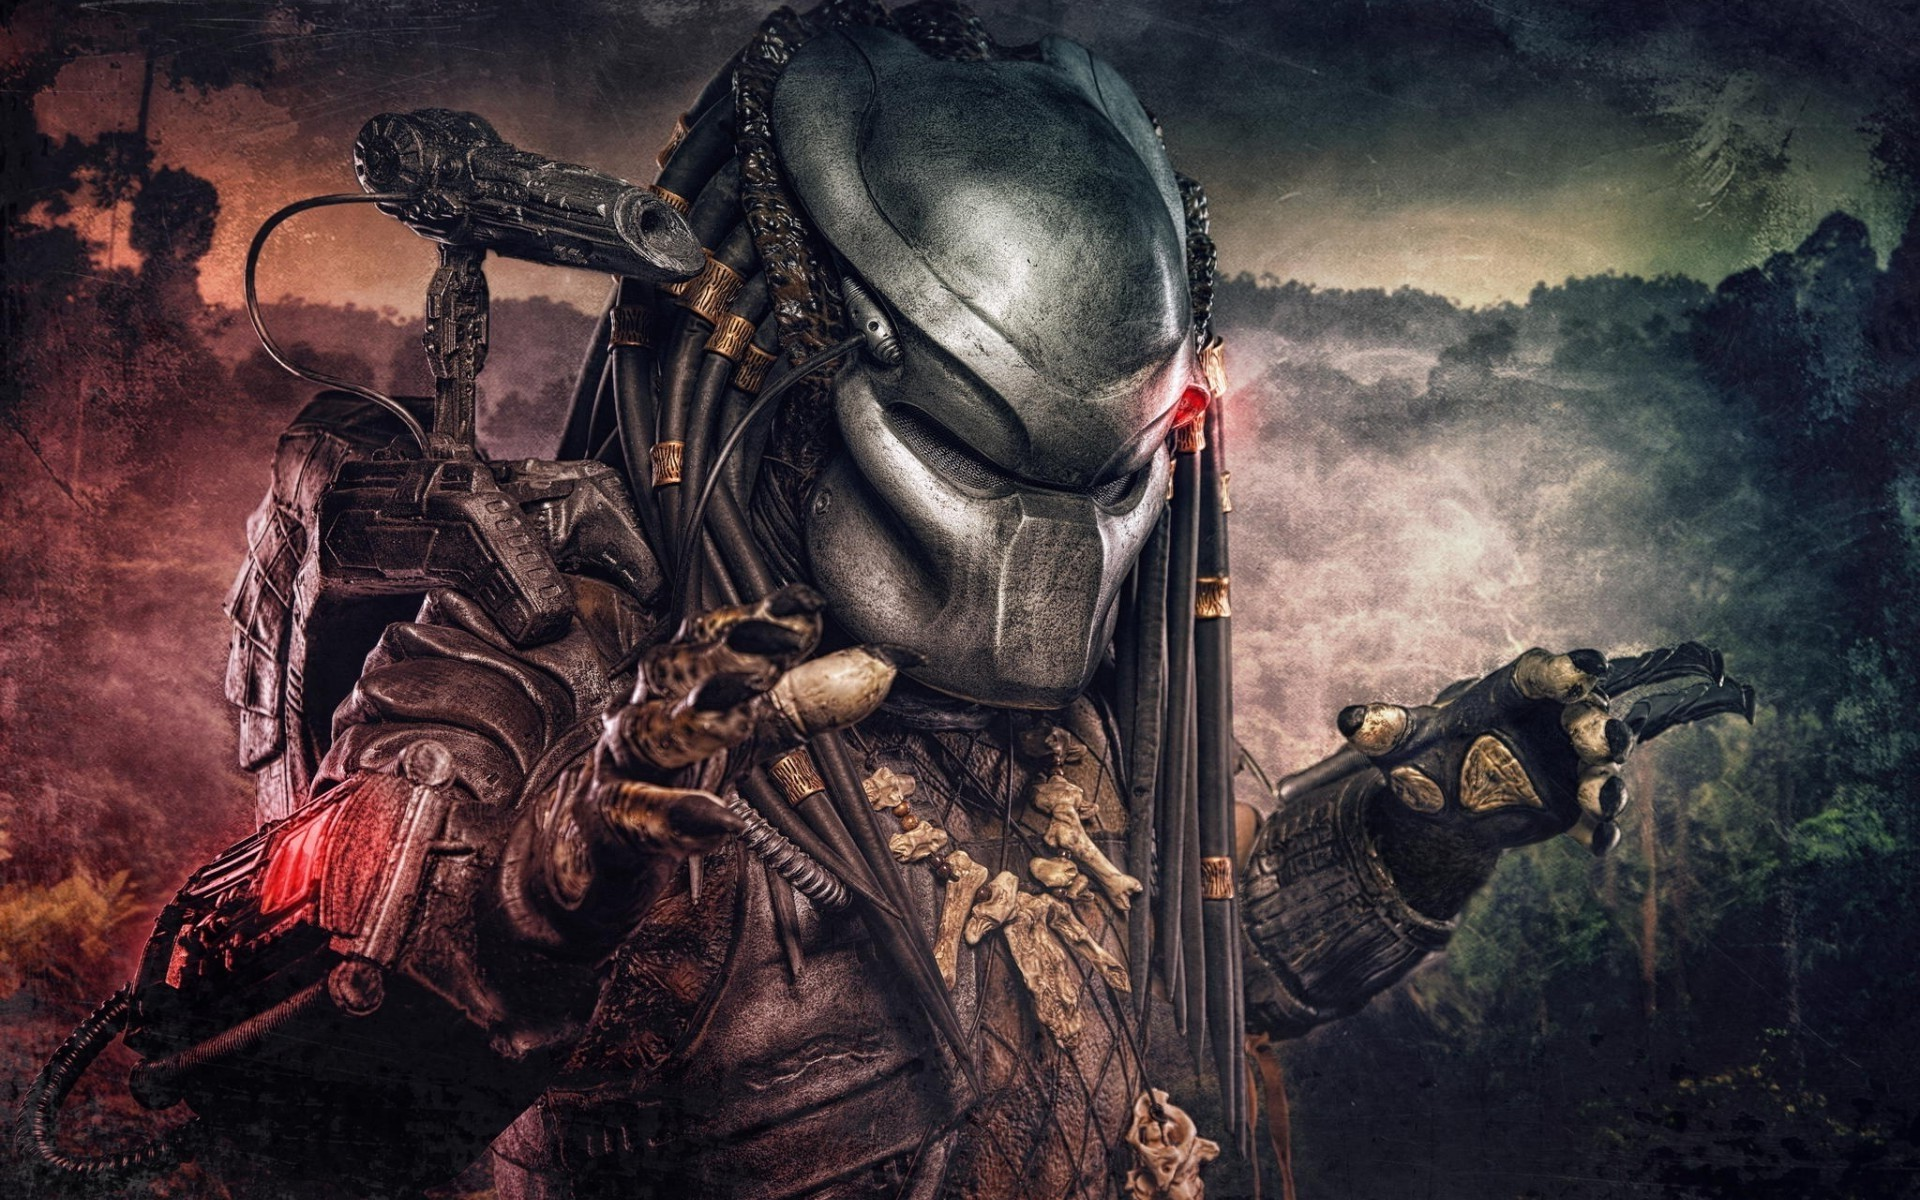 Alien Vs Predator Predator movie Wallpapers HD Desktop and 1920x1200